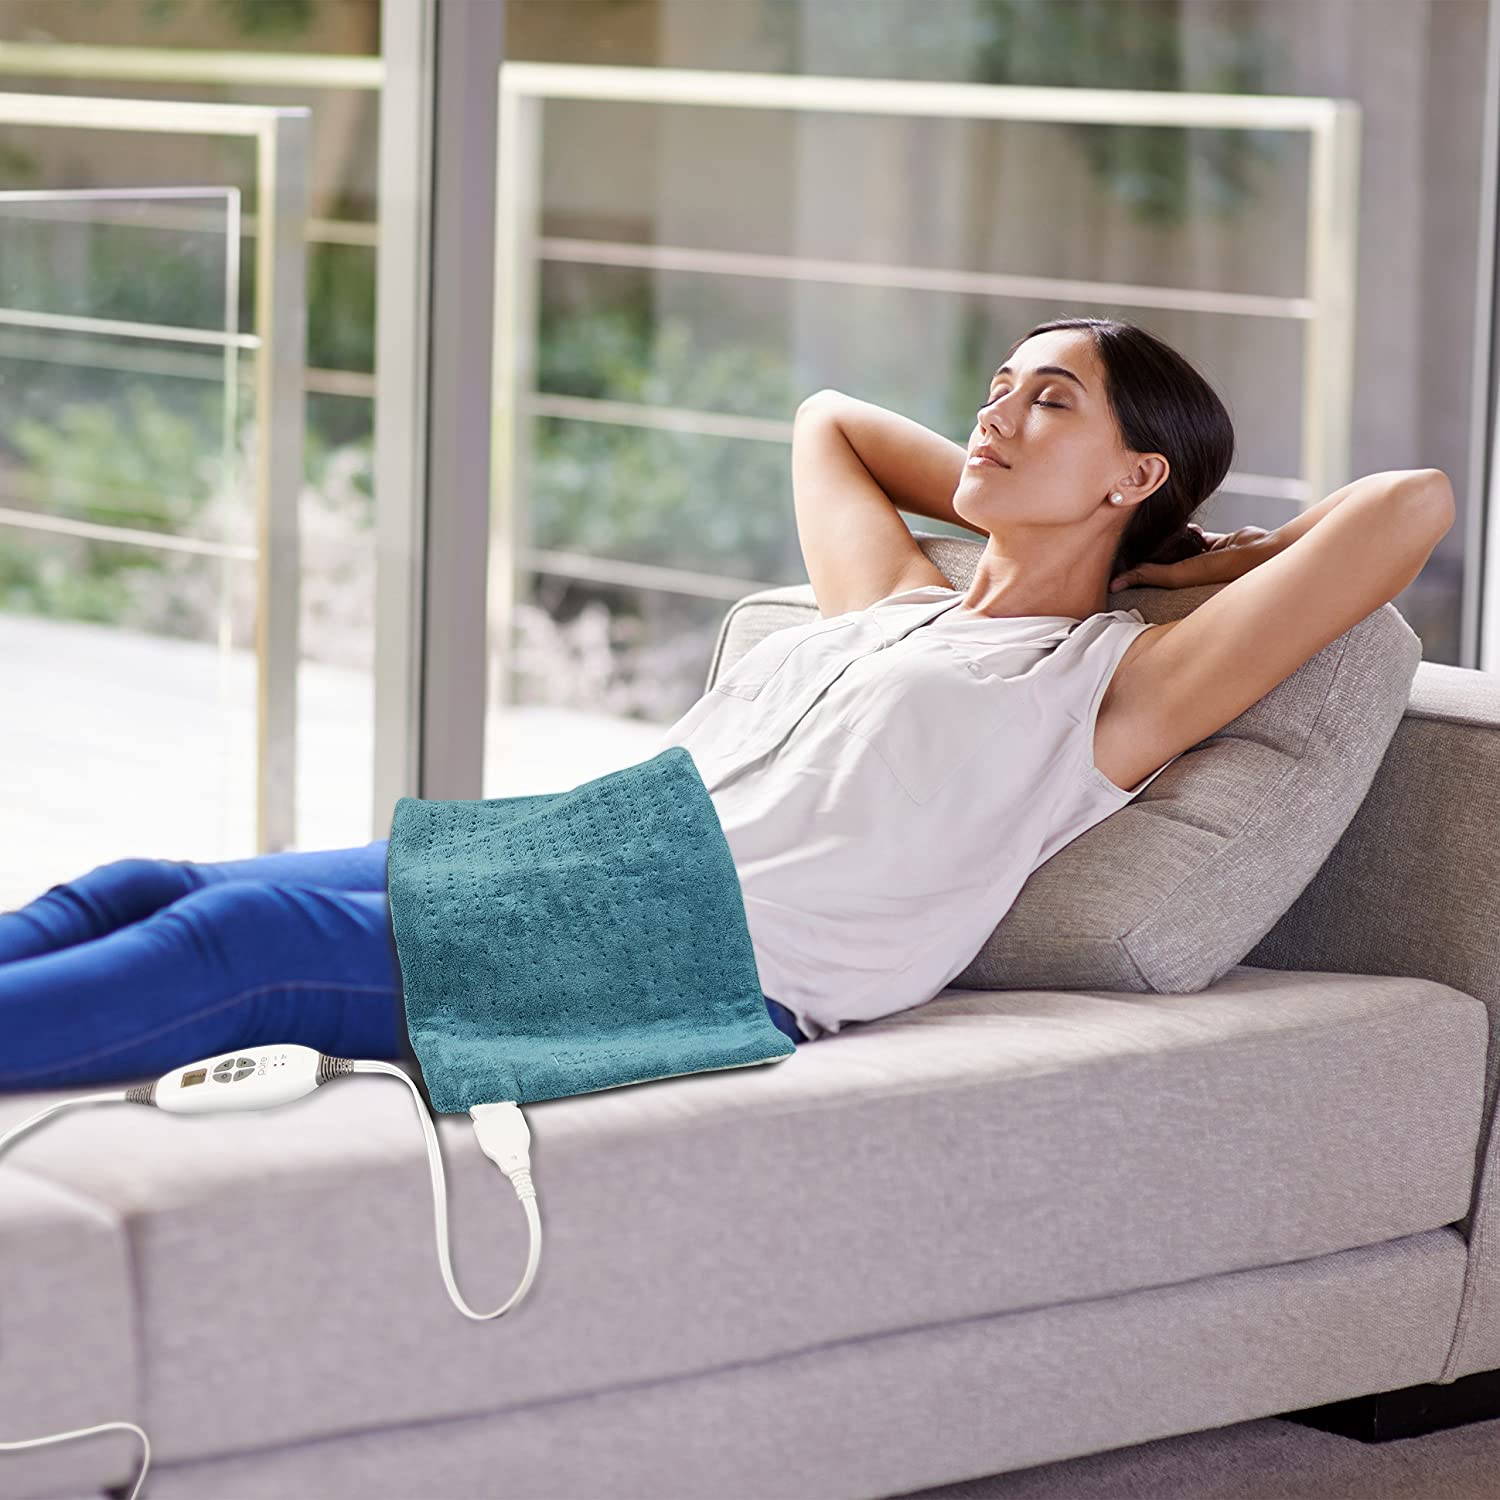 """Pure Enrichment PureRelief XL (12""""x24"""") Electric Heating Pad for Back Pain and Cramps - Ultra-Soft with 6 Temperature Settings, Auto Shut-Off, and Moist Heat (Turquoise Blue): Health & Personal Care"""